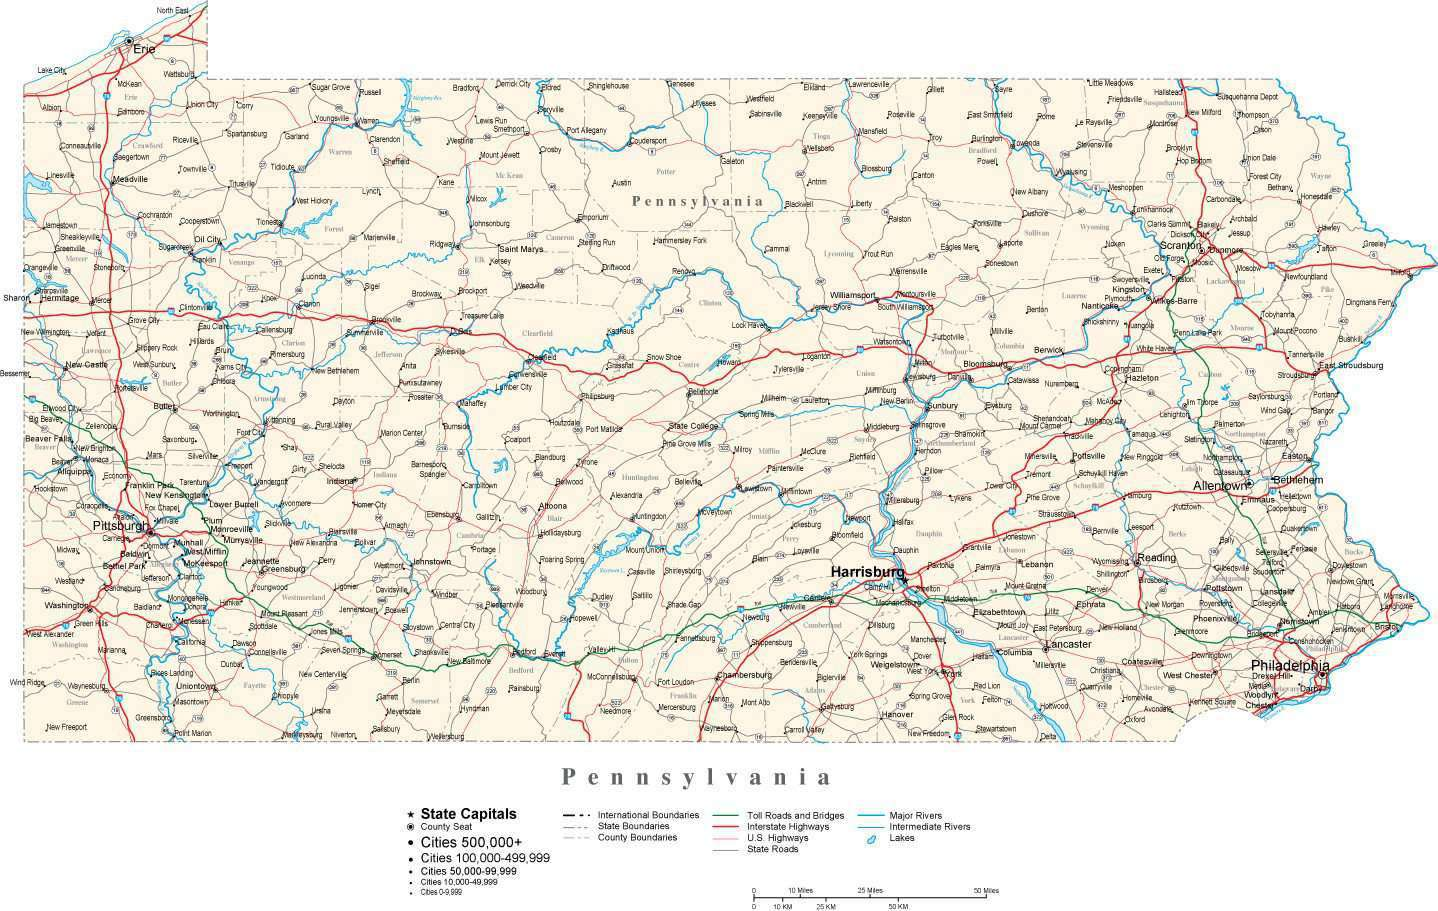 Pennsylvania State Map in Fit-Together Style to match other states ...